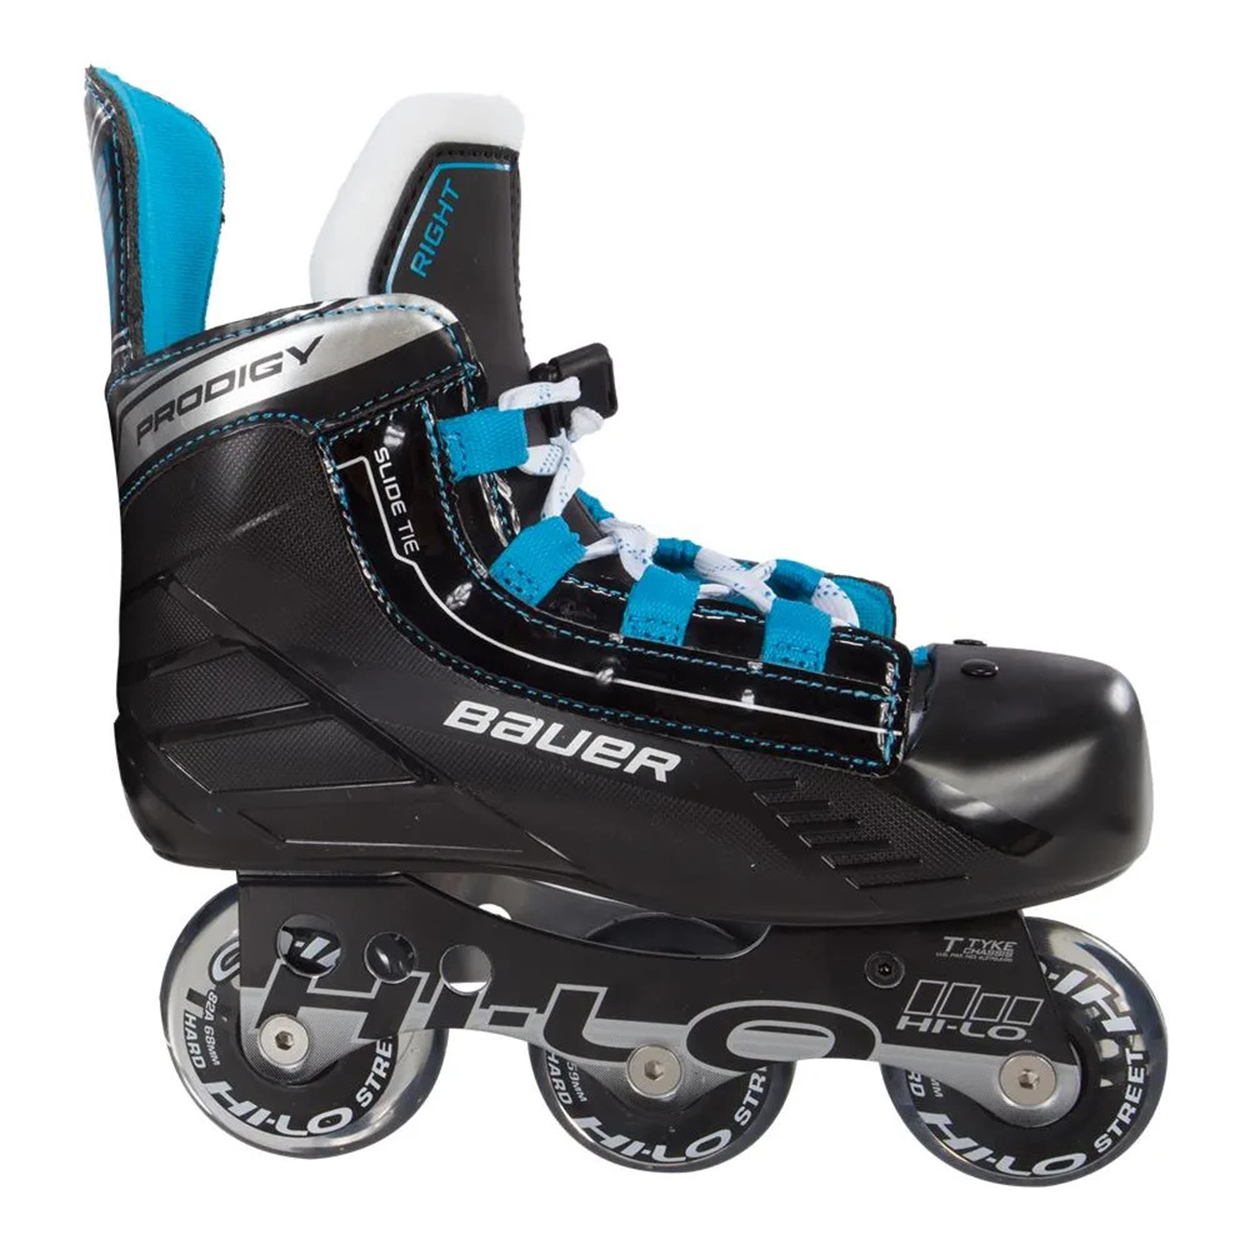 BAUER RH PRODIGY Skate,Black,medium